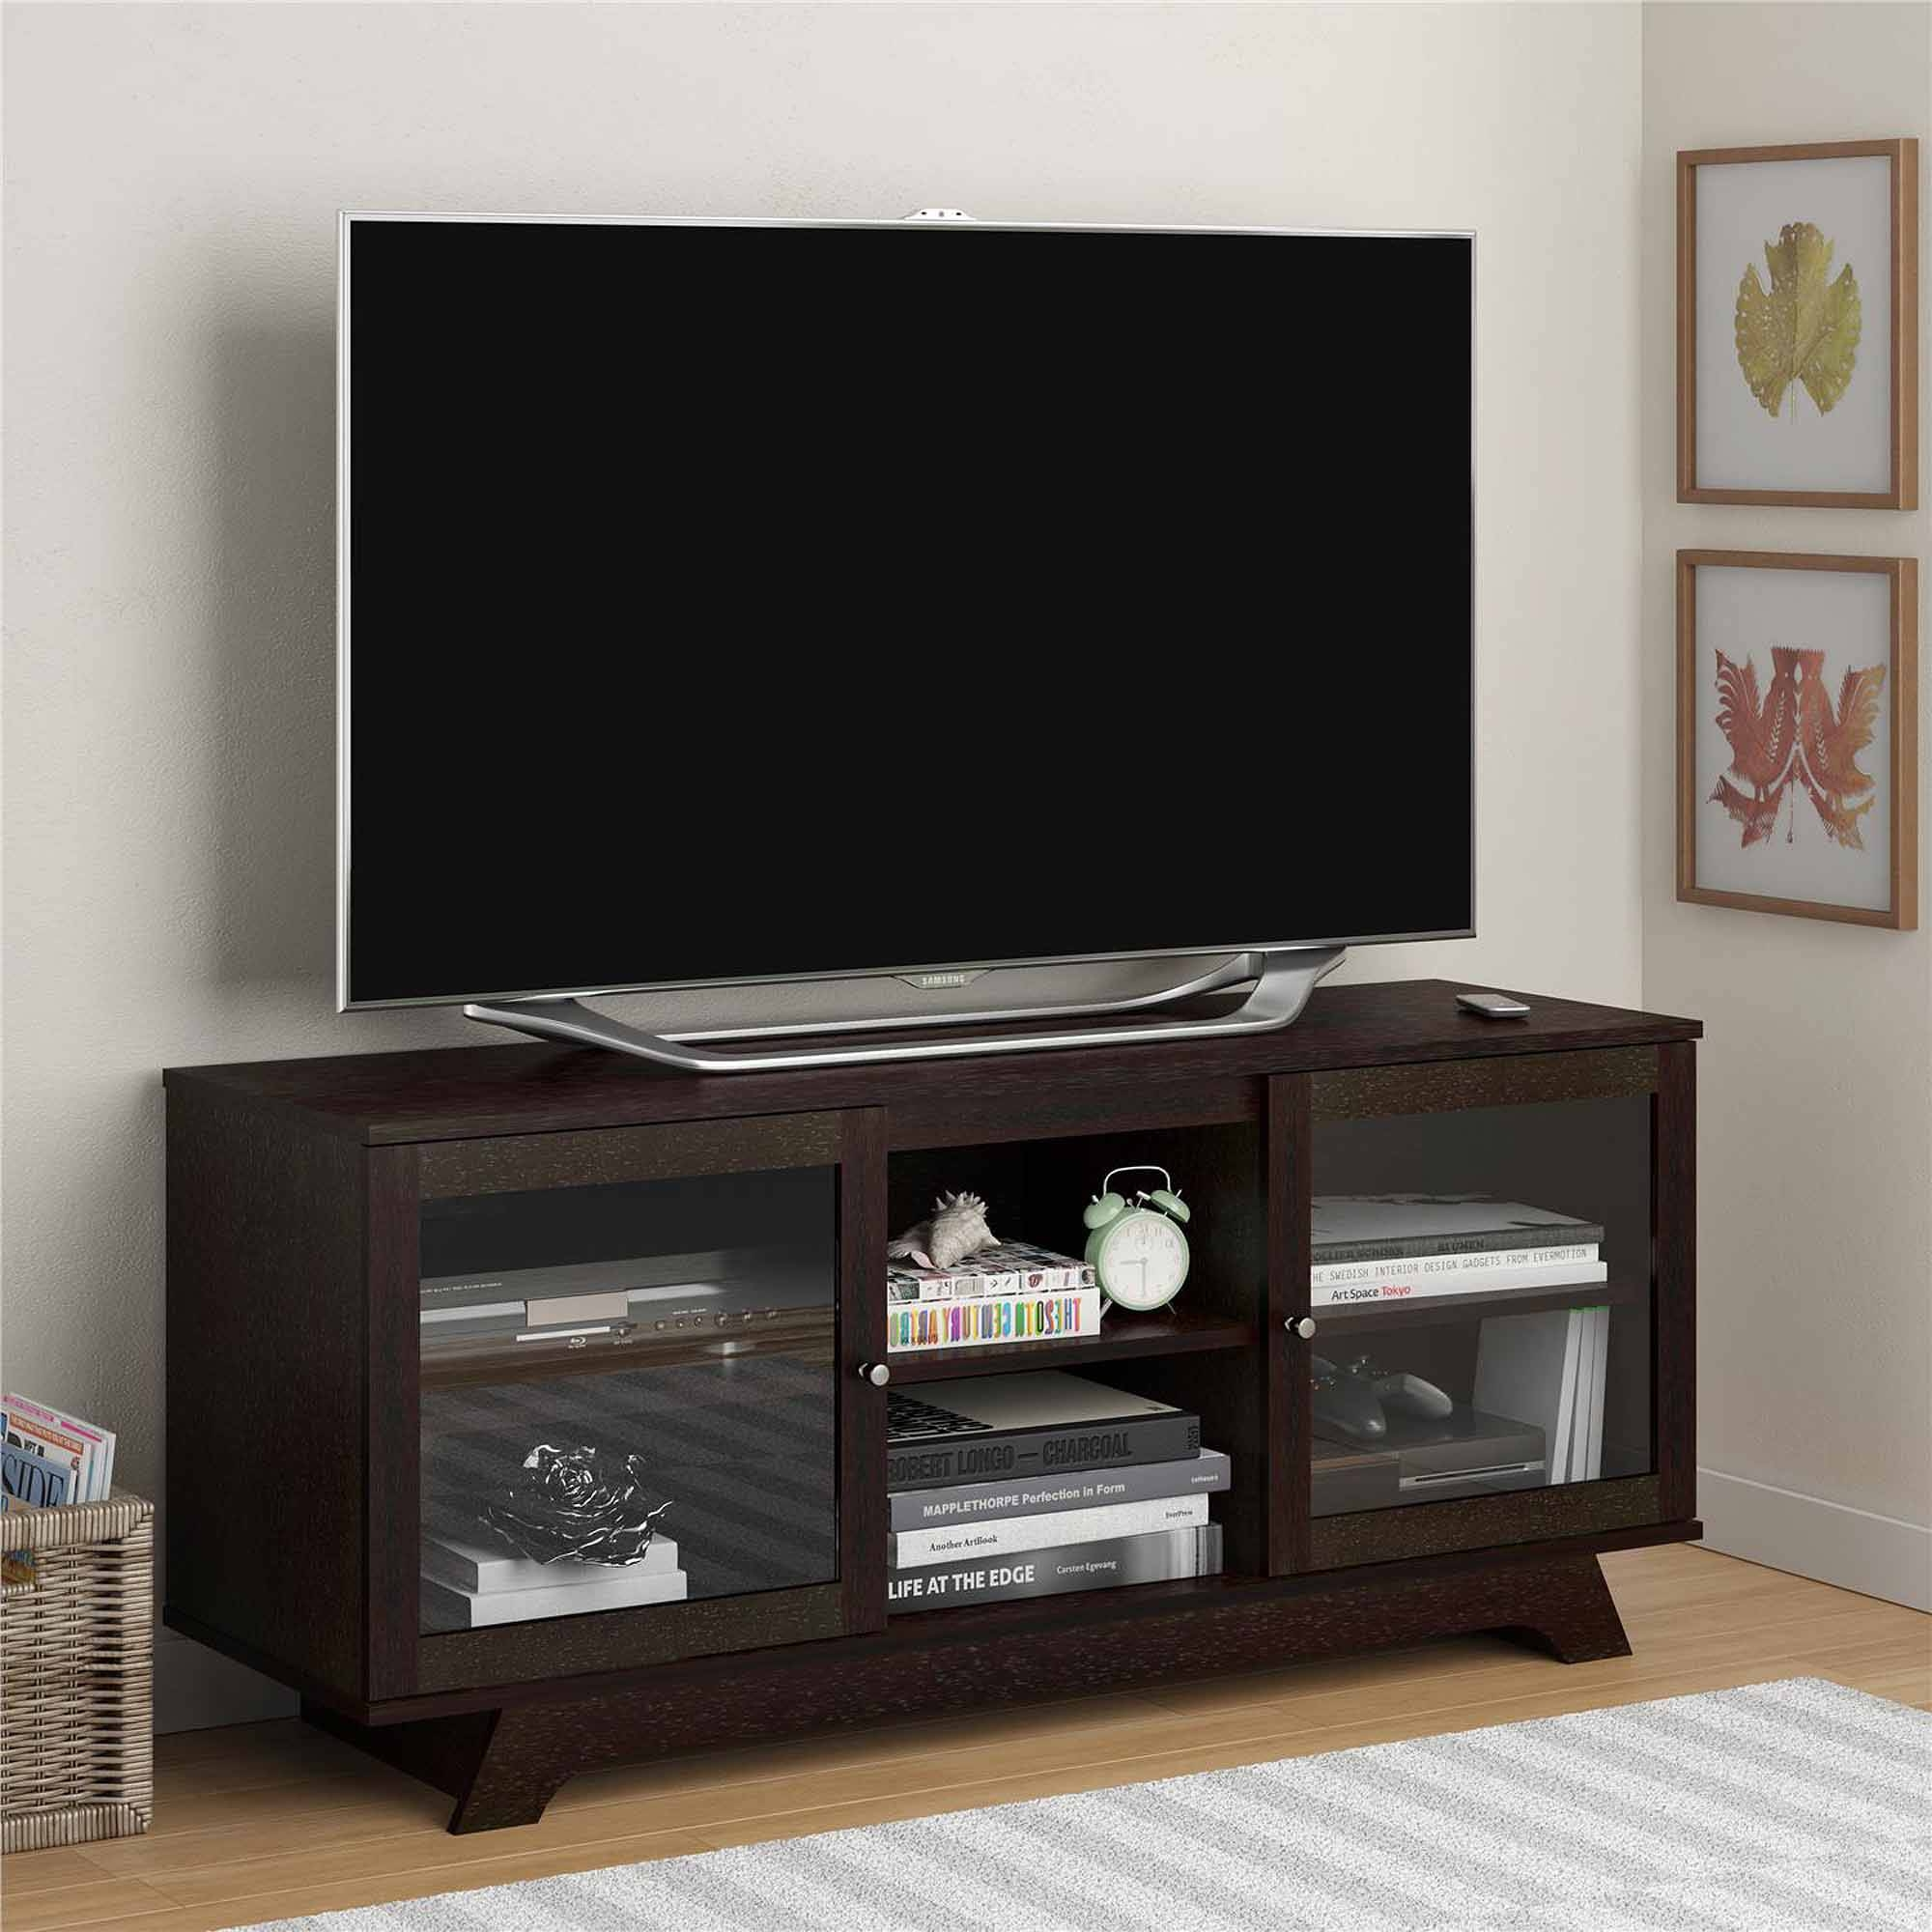 Tv Stands & Entertainment Centers – Walmart With Regard To Tv Entertainment Units (View 7 of 15)